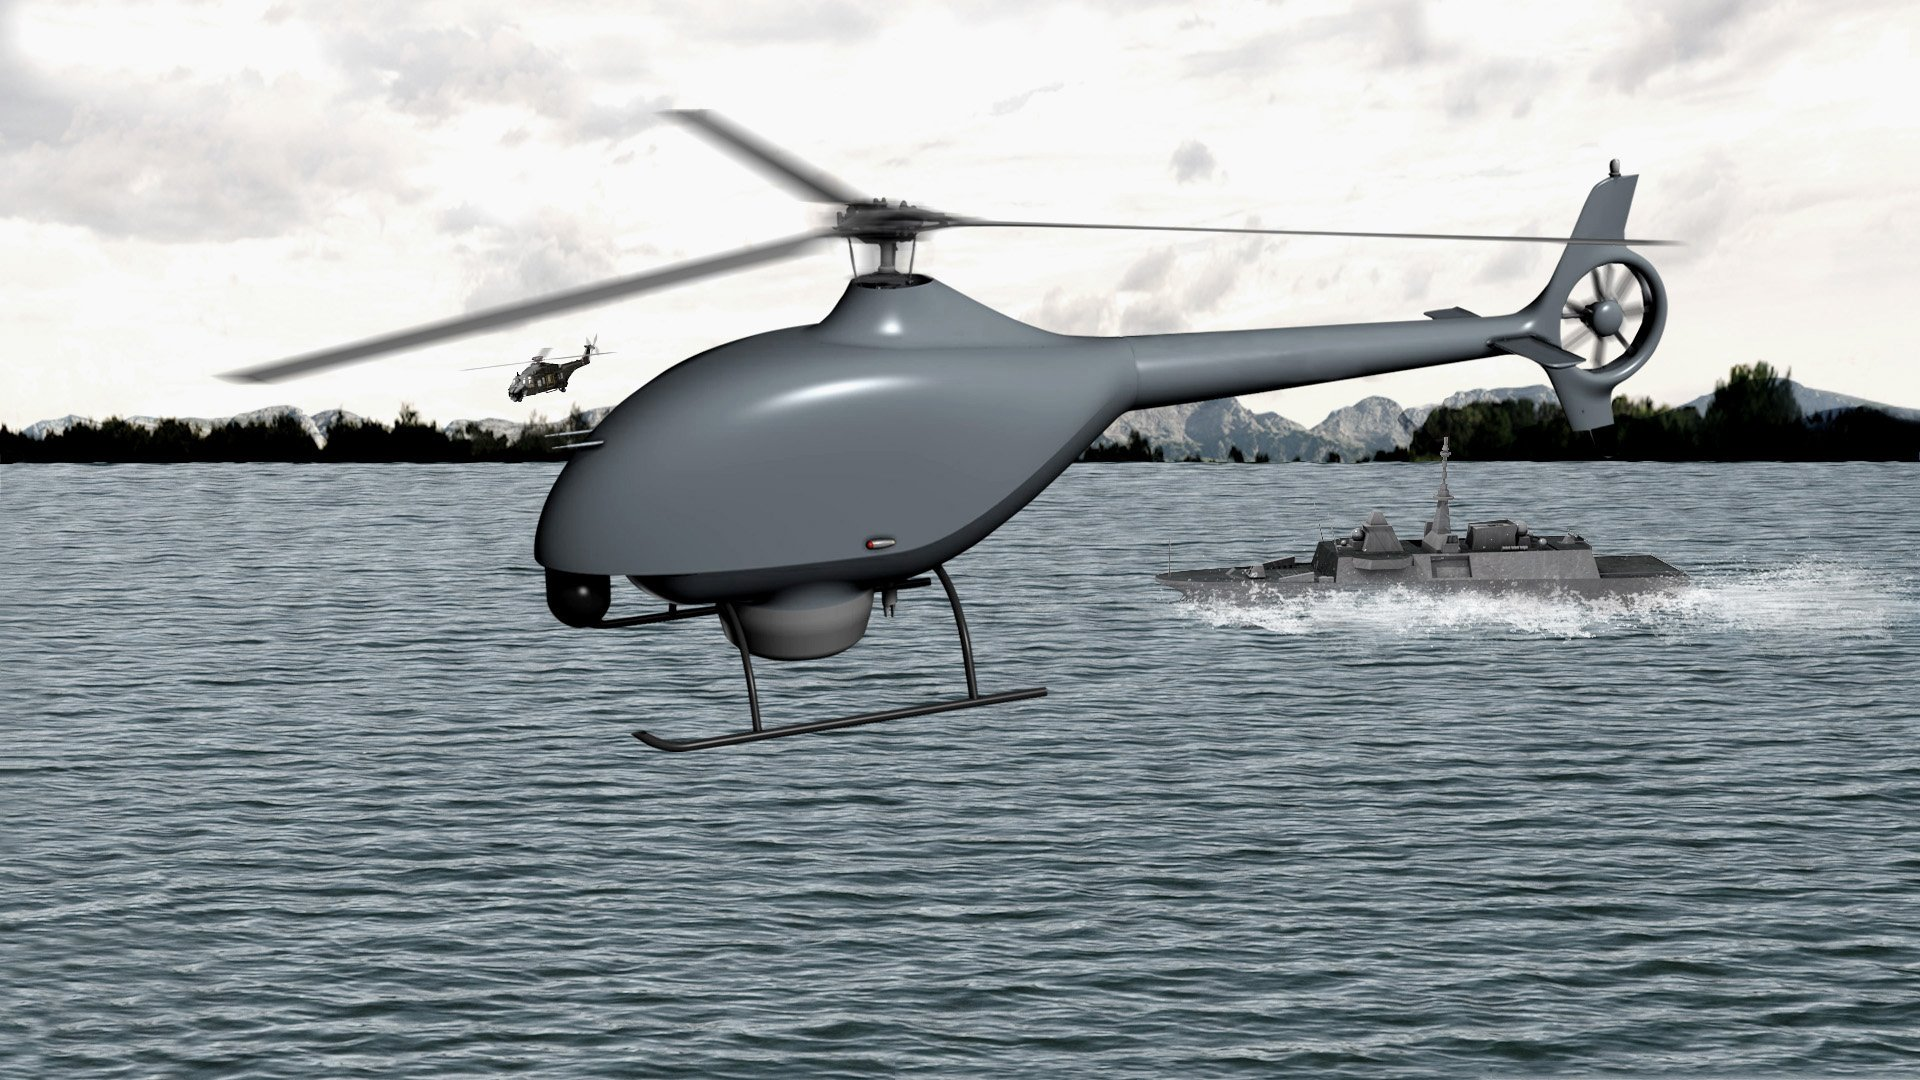 DCNS and Airbus Helicopters join forces to design the French Navy's future tactical VTOL drone system